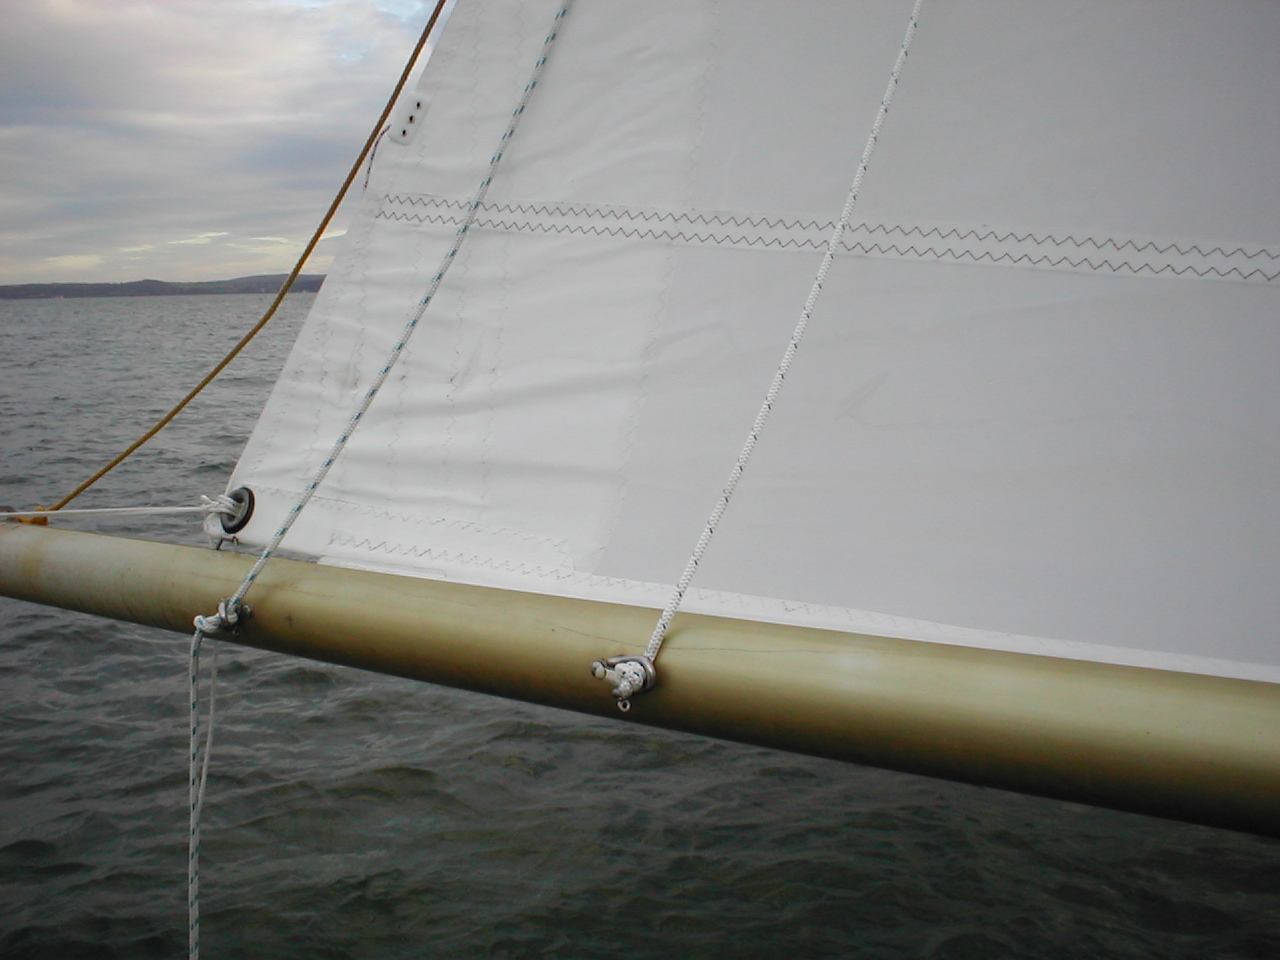 Archimedes - reefing lines